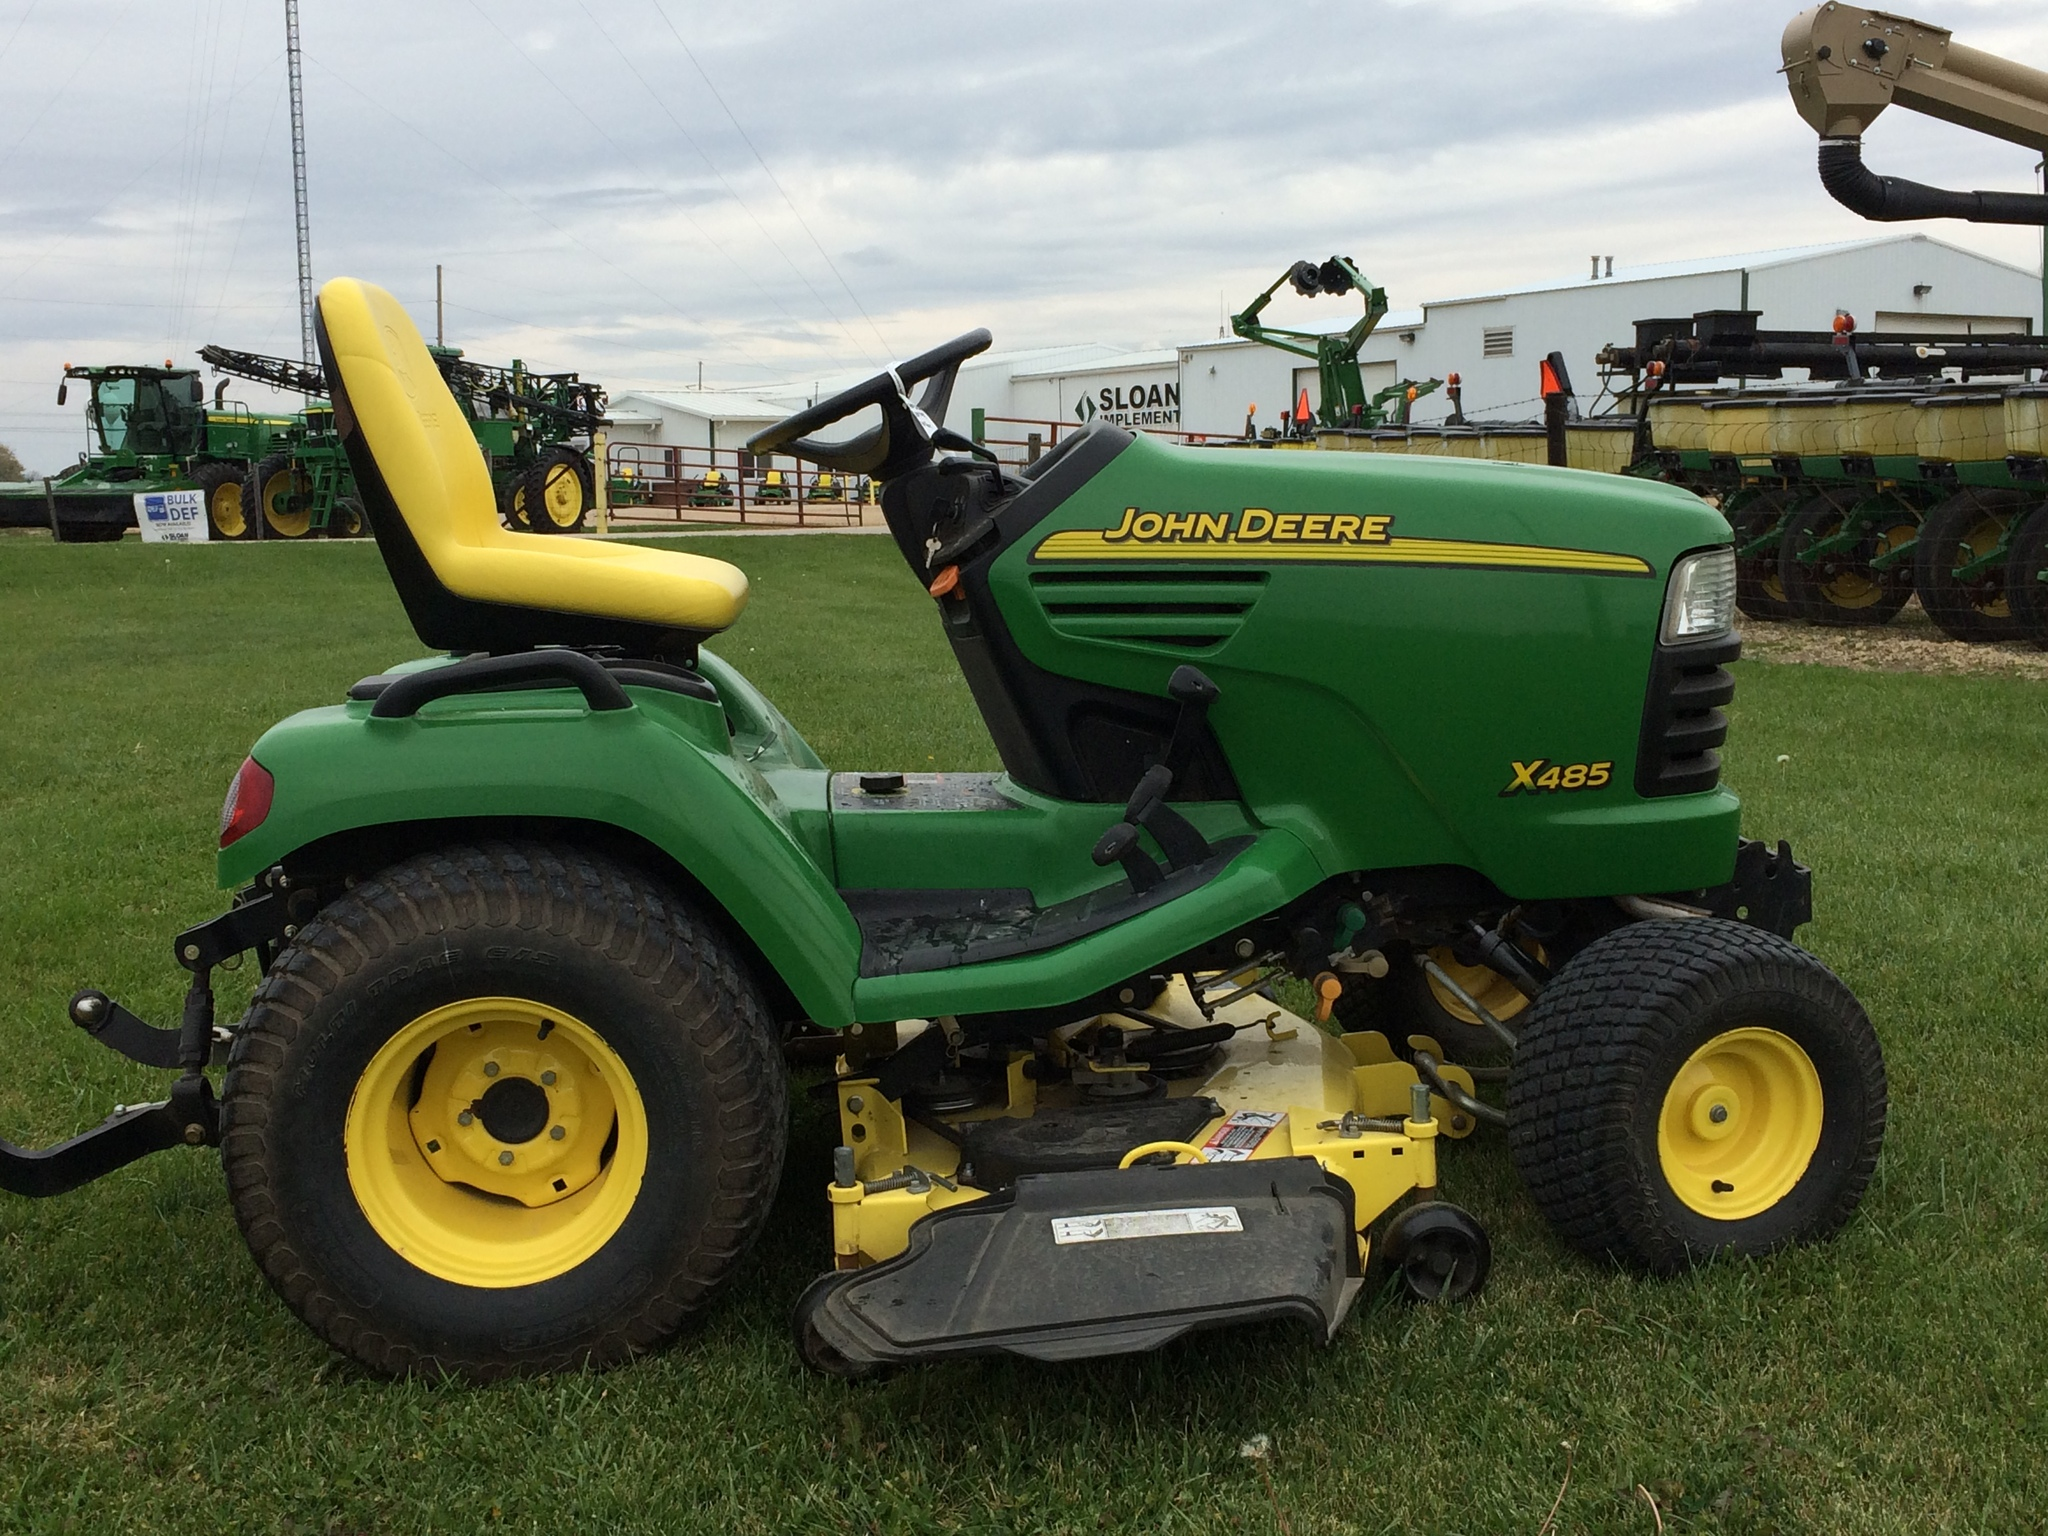 Used Garden Tractor Loaders : John deere lawn garden tractors for sale